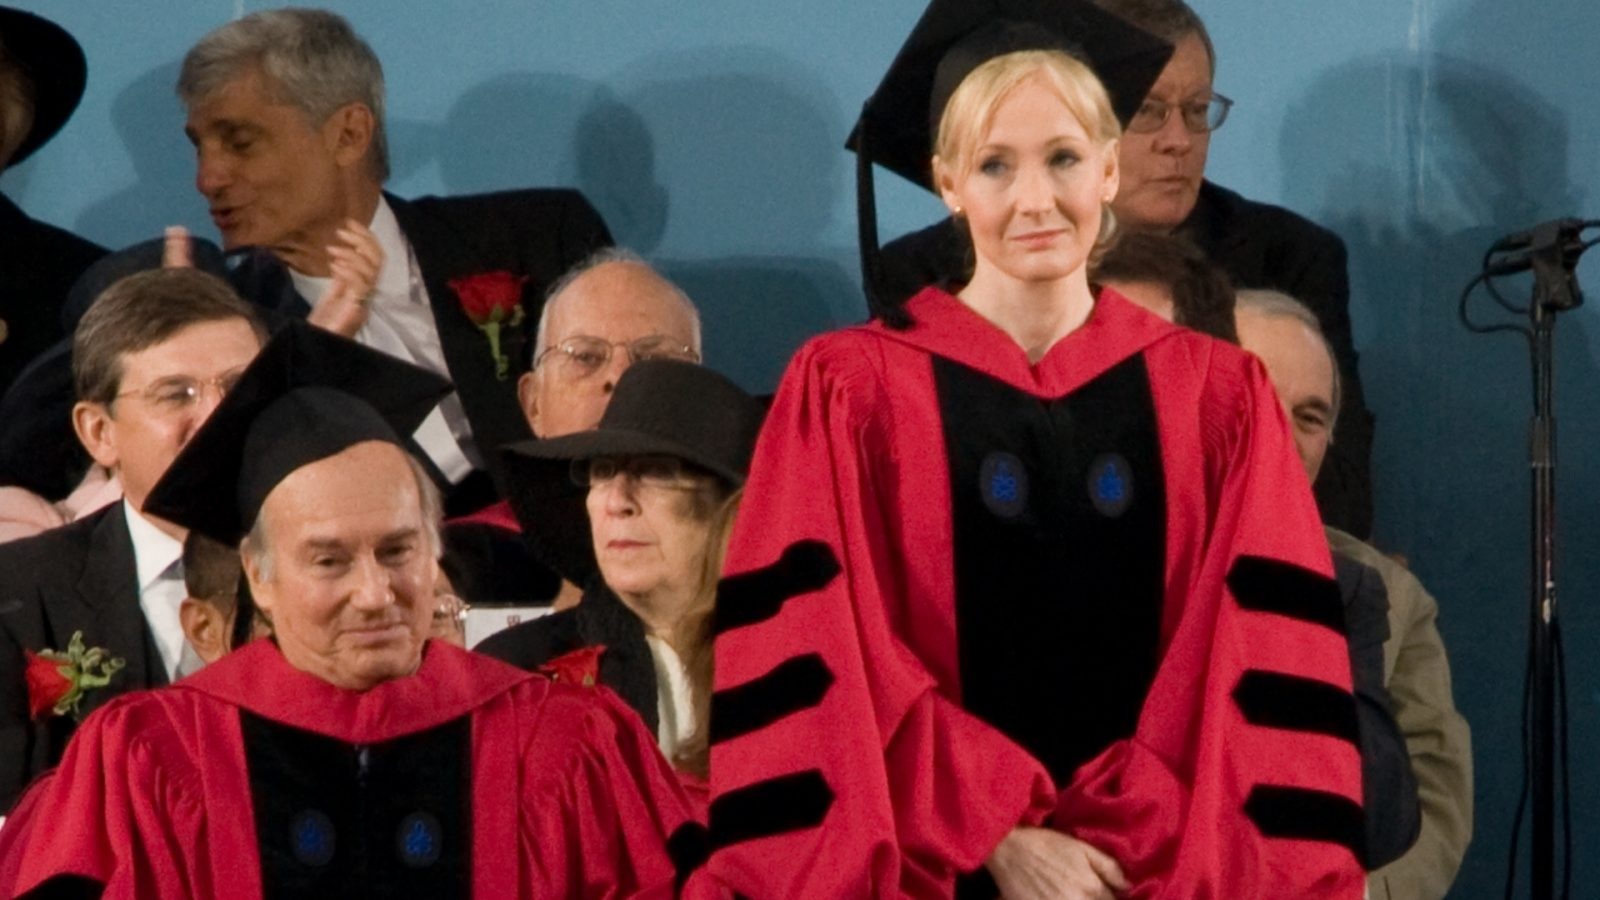 jk Rowling accepting honorary degree